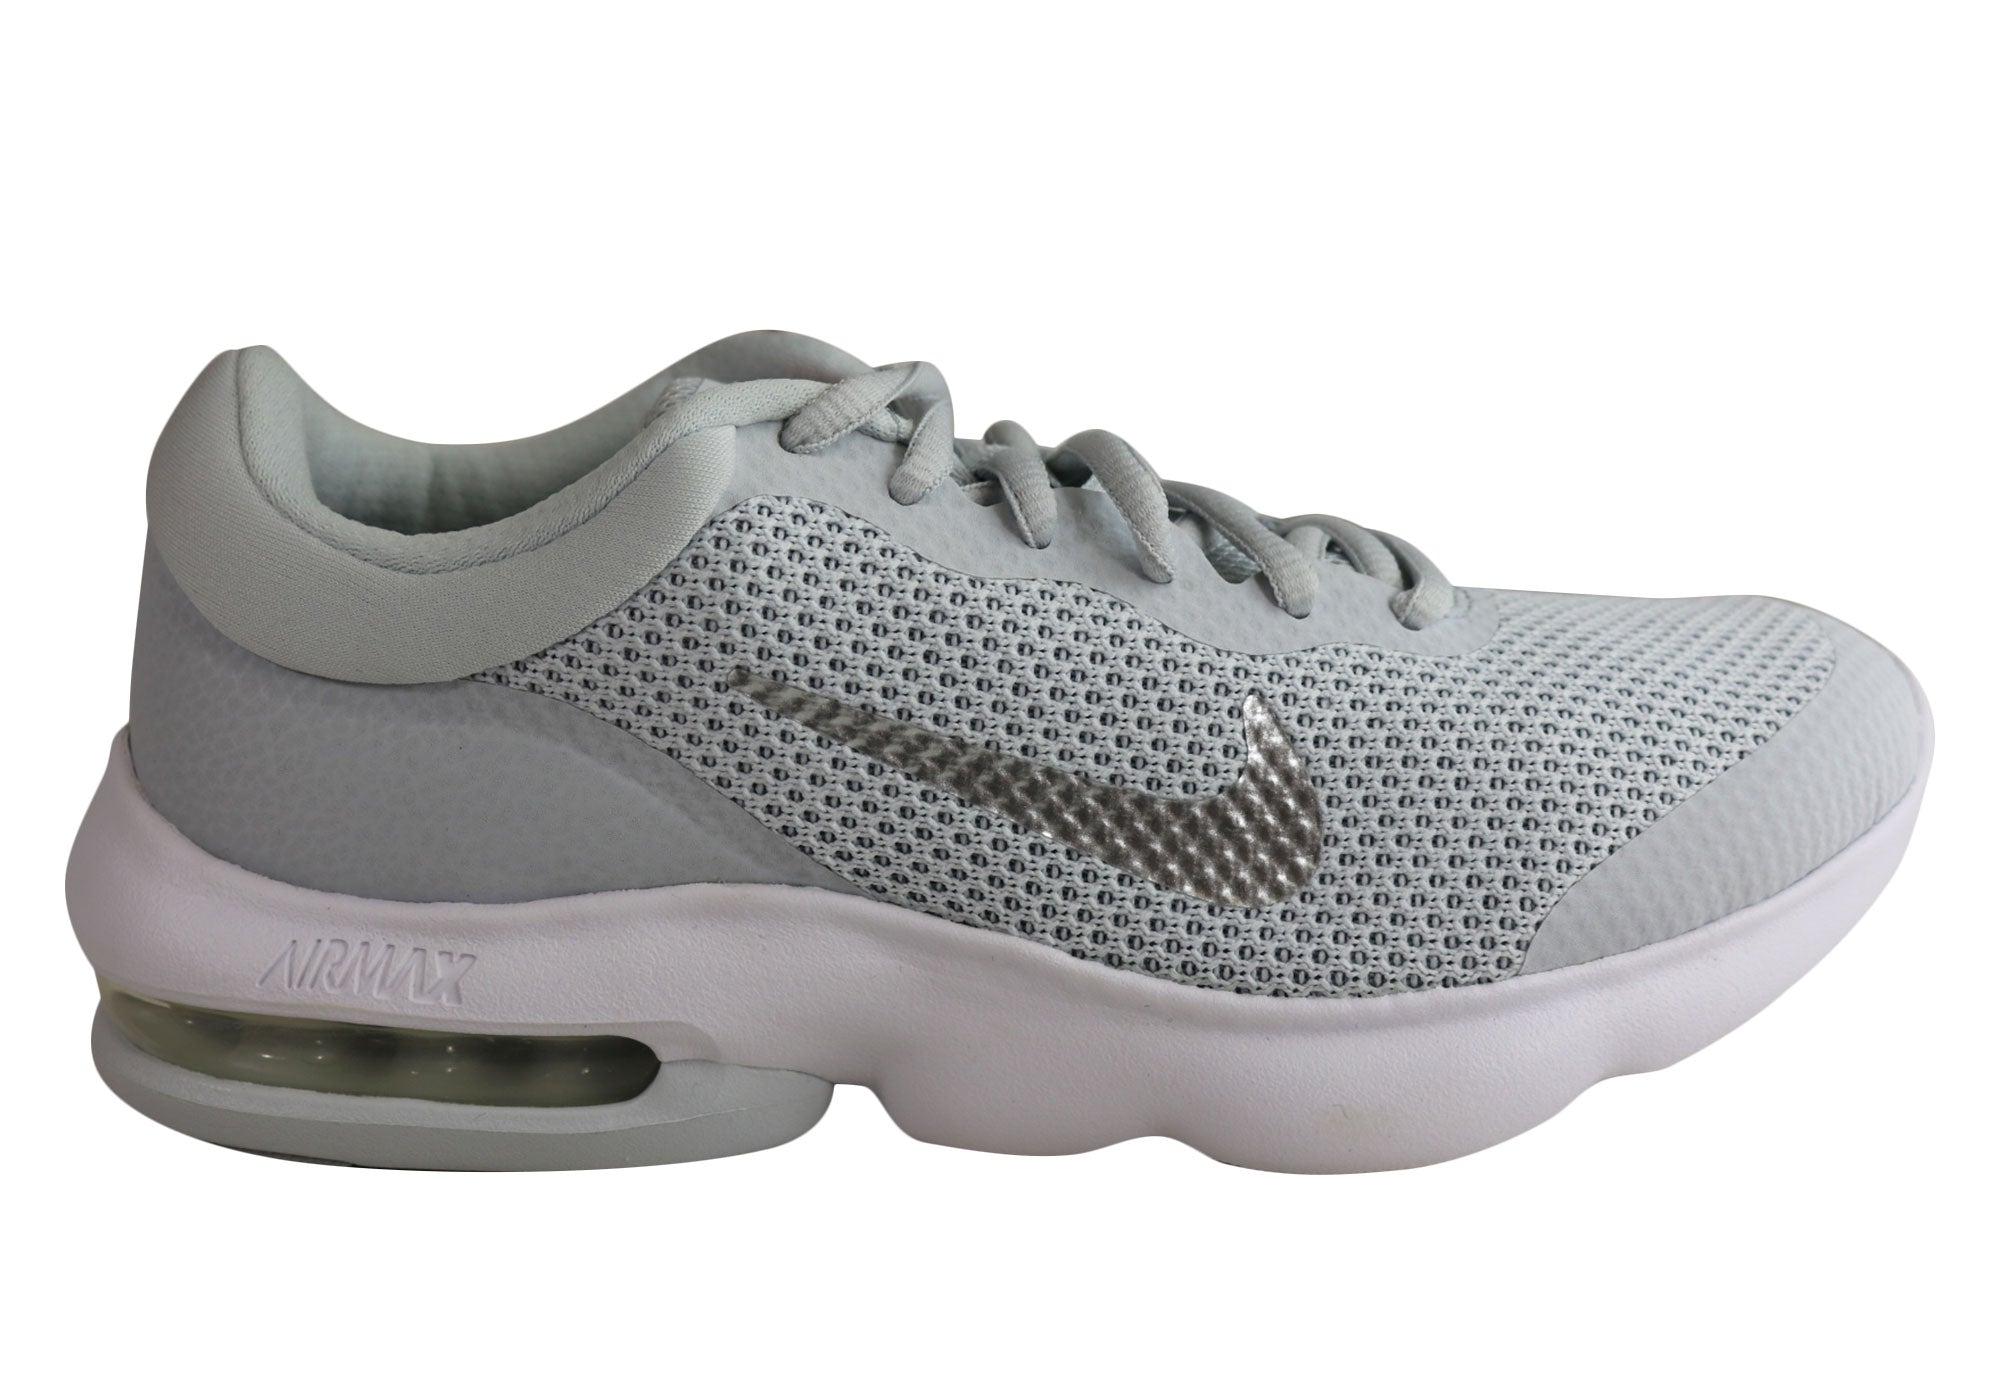 Adelantar Controlar dueña  Nike Womens Air Max Advantage Trainers Sport Shoes | Brand House Direct